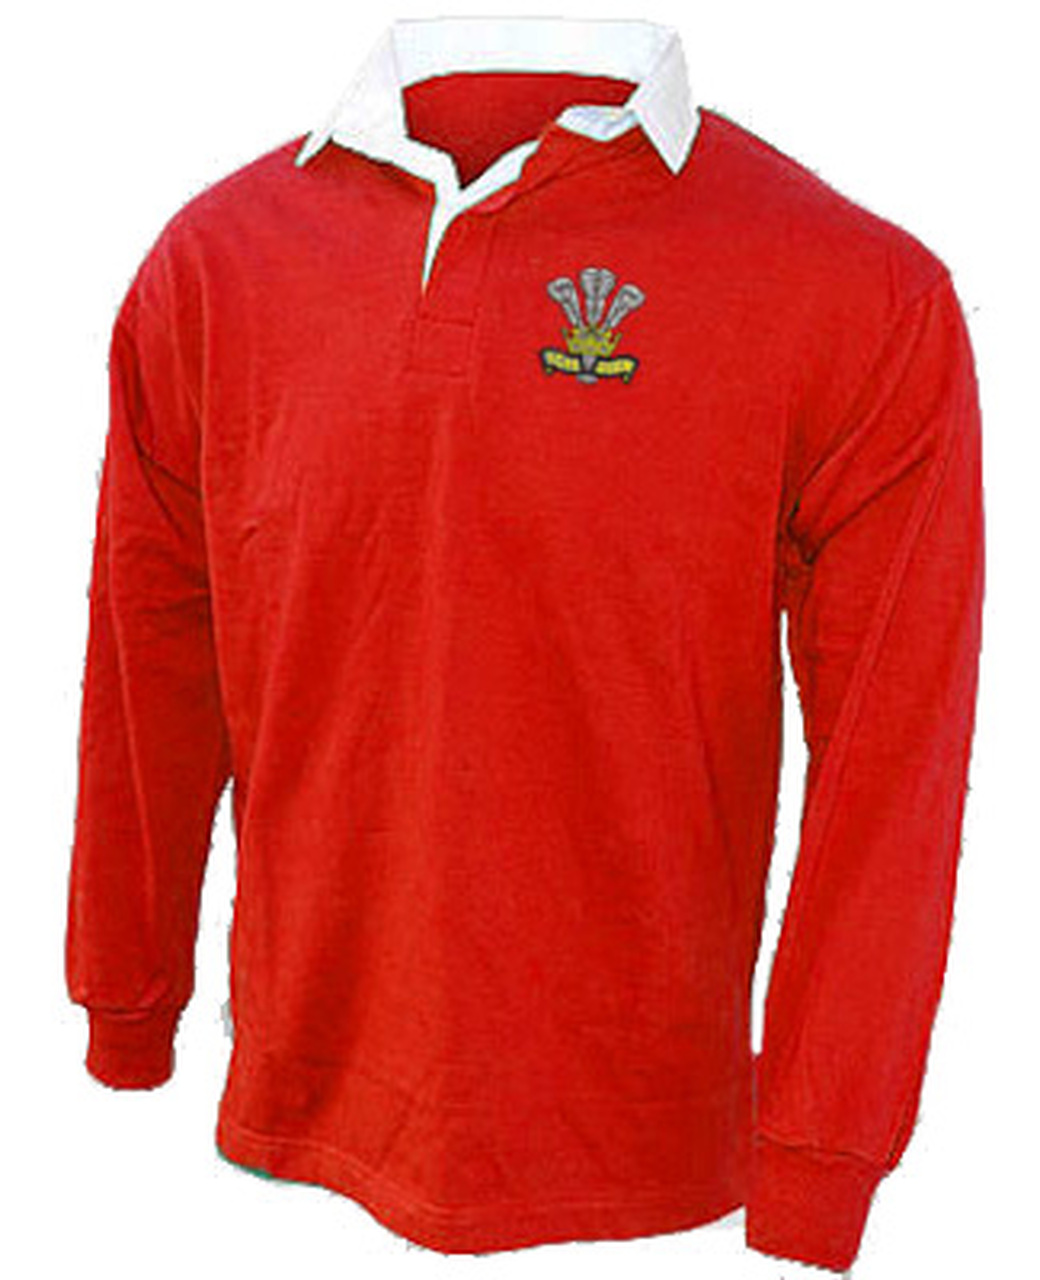 bf7d098a7f4 Retro wales rugby jersey vintage welsh rugby shirt as worn by Gareth  Edwards, J.P.R. Williams